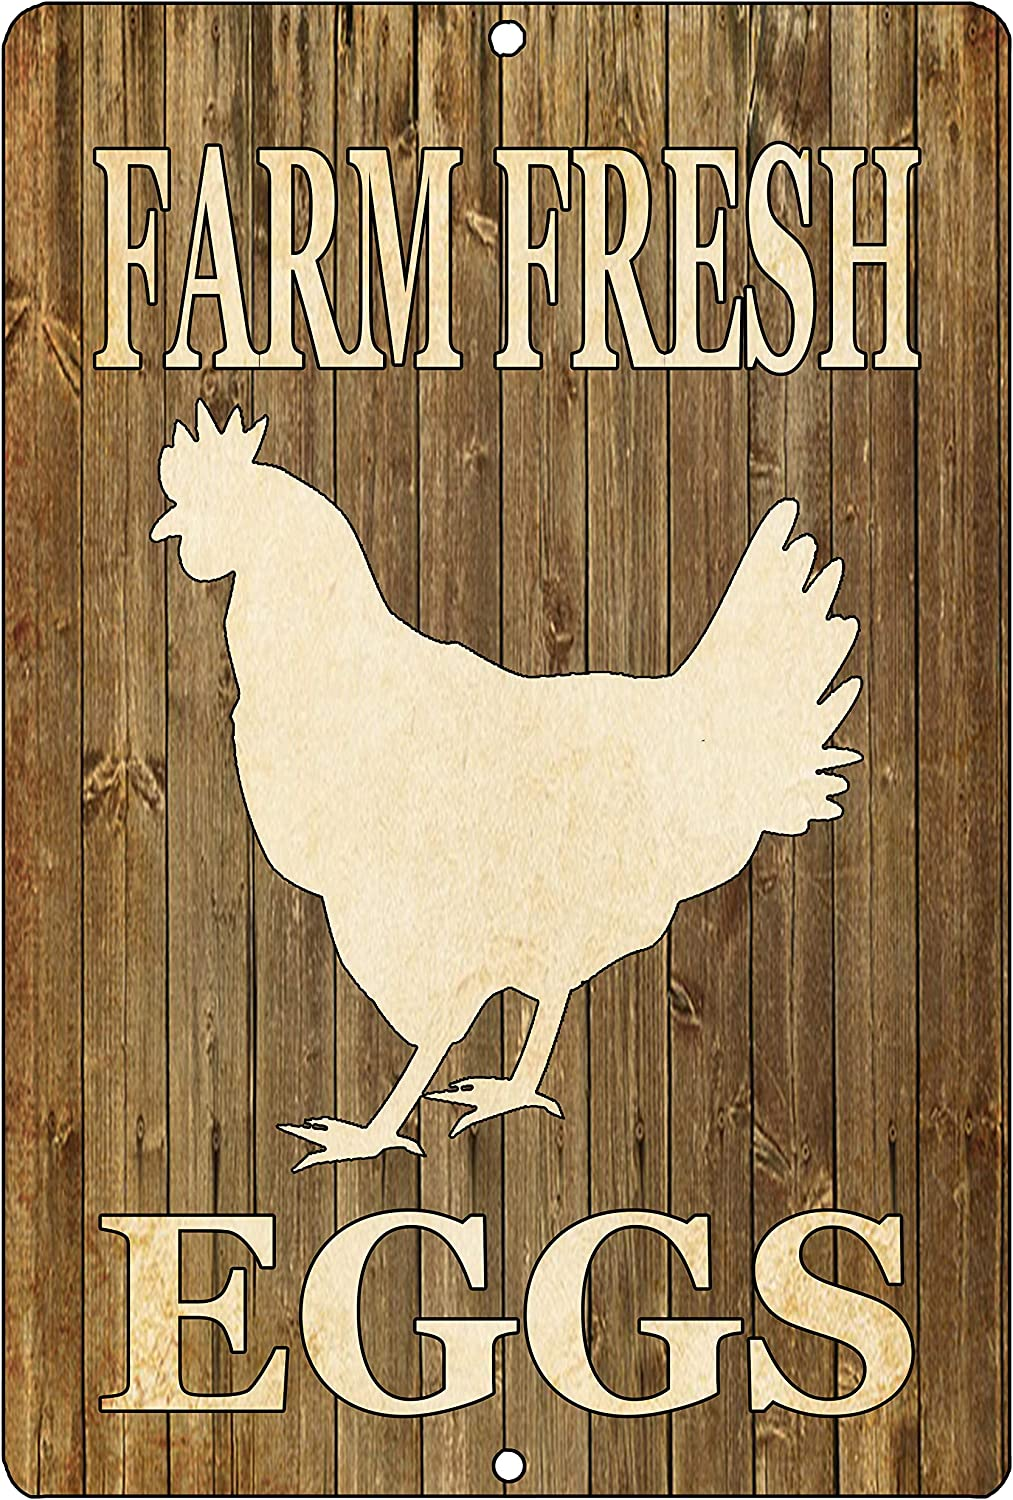 Rogue River Tactical Chicken Farm Fresh Eggs Metal Tin Sign Ranch Kitchen Wall Decor Country Rustic